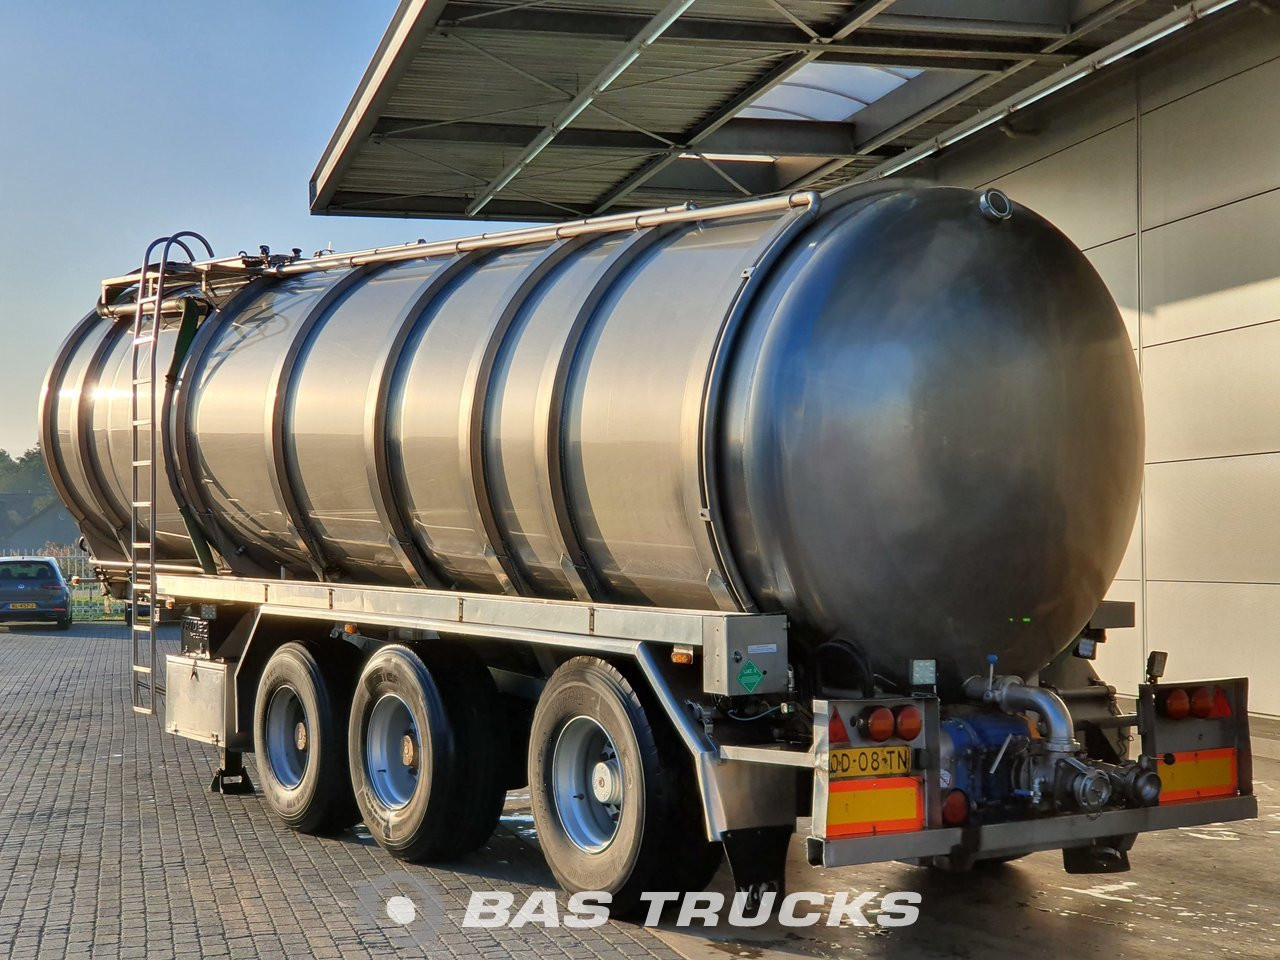 Letter Of Offering Awesome for Sale at Bas Trucks Vocol Stainless Steel 38 000 Ltr Pump Gülle Mest Wasser 01 1996